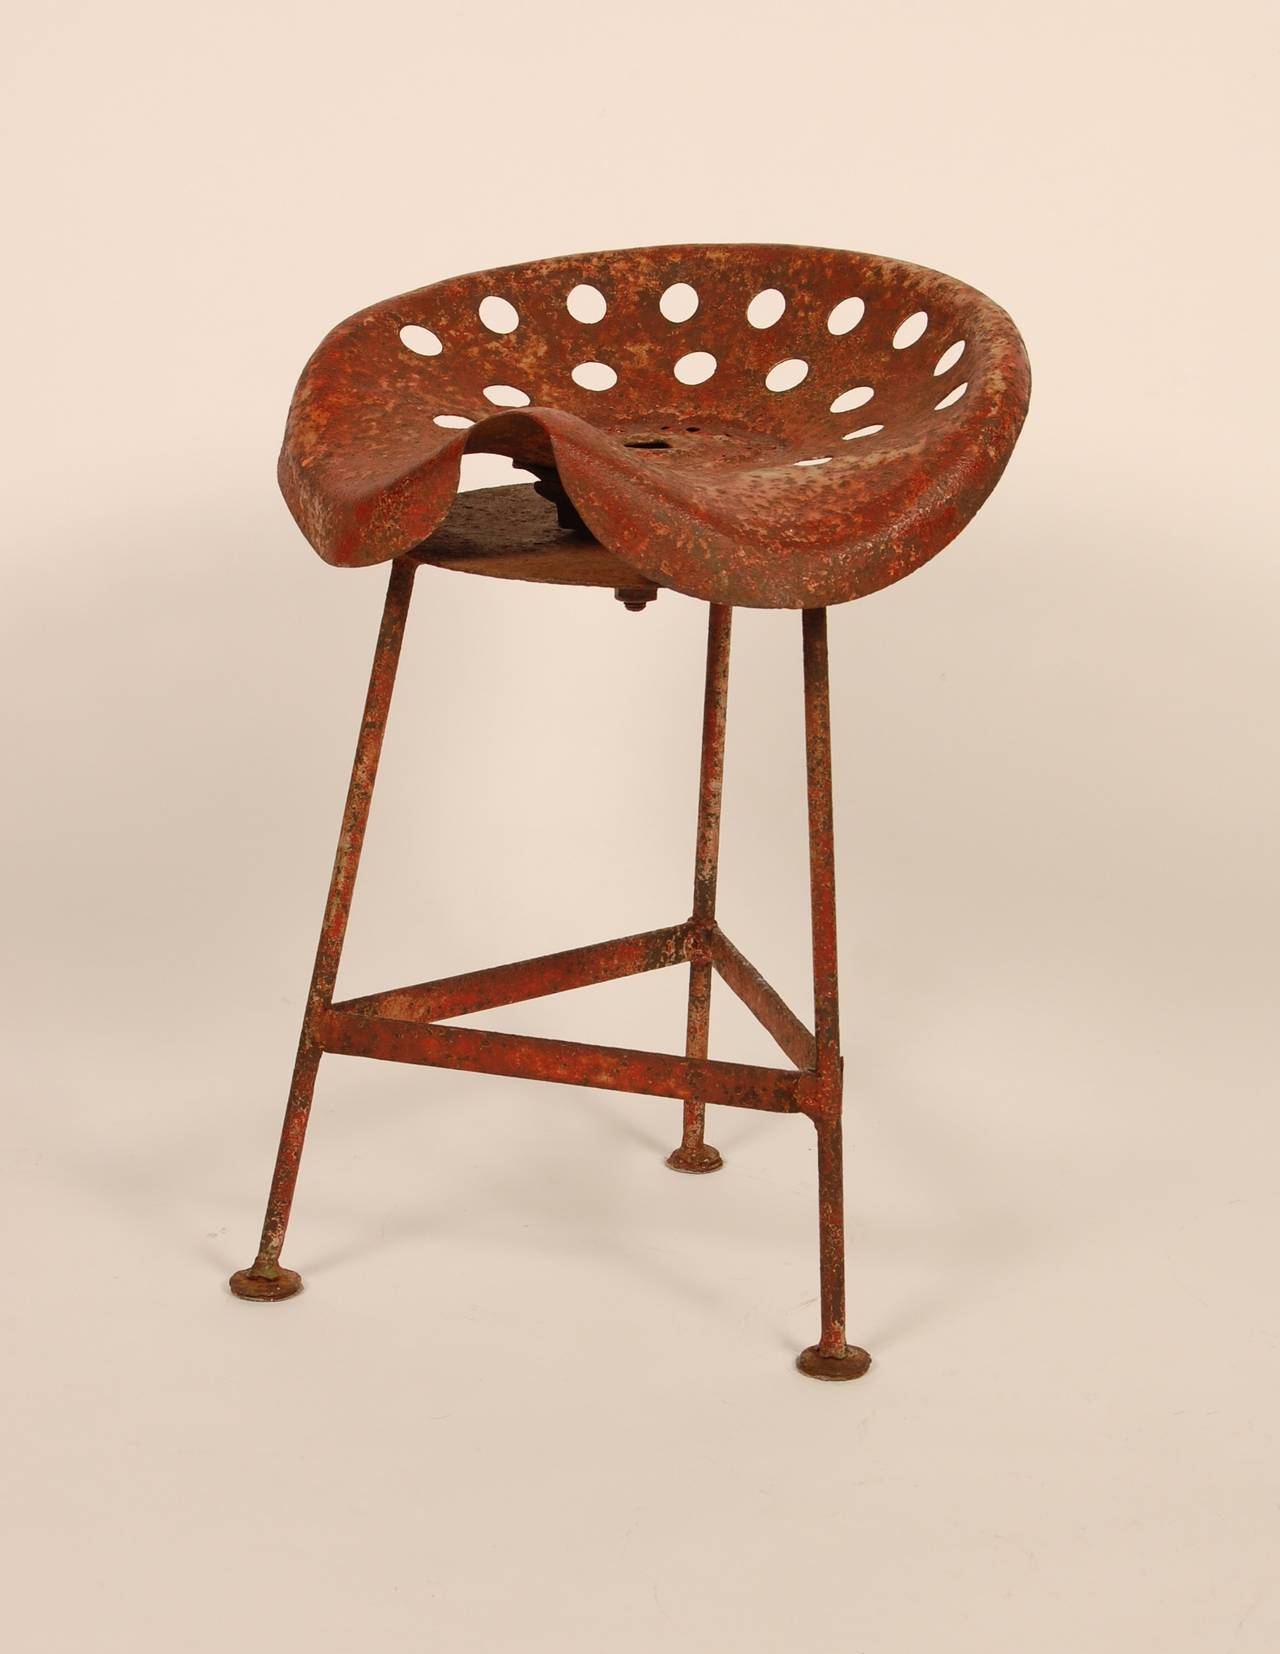 Tractor Seat Stools Or Chairs : Rustic tractor seat stool at stdibs